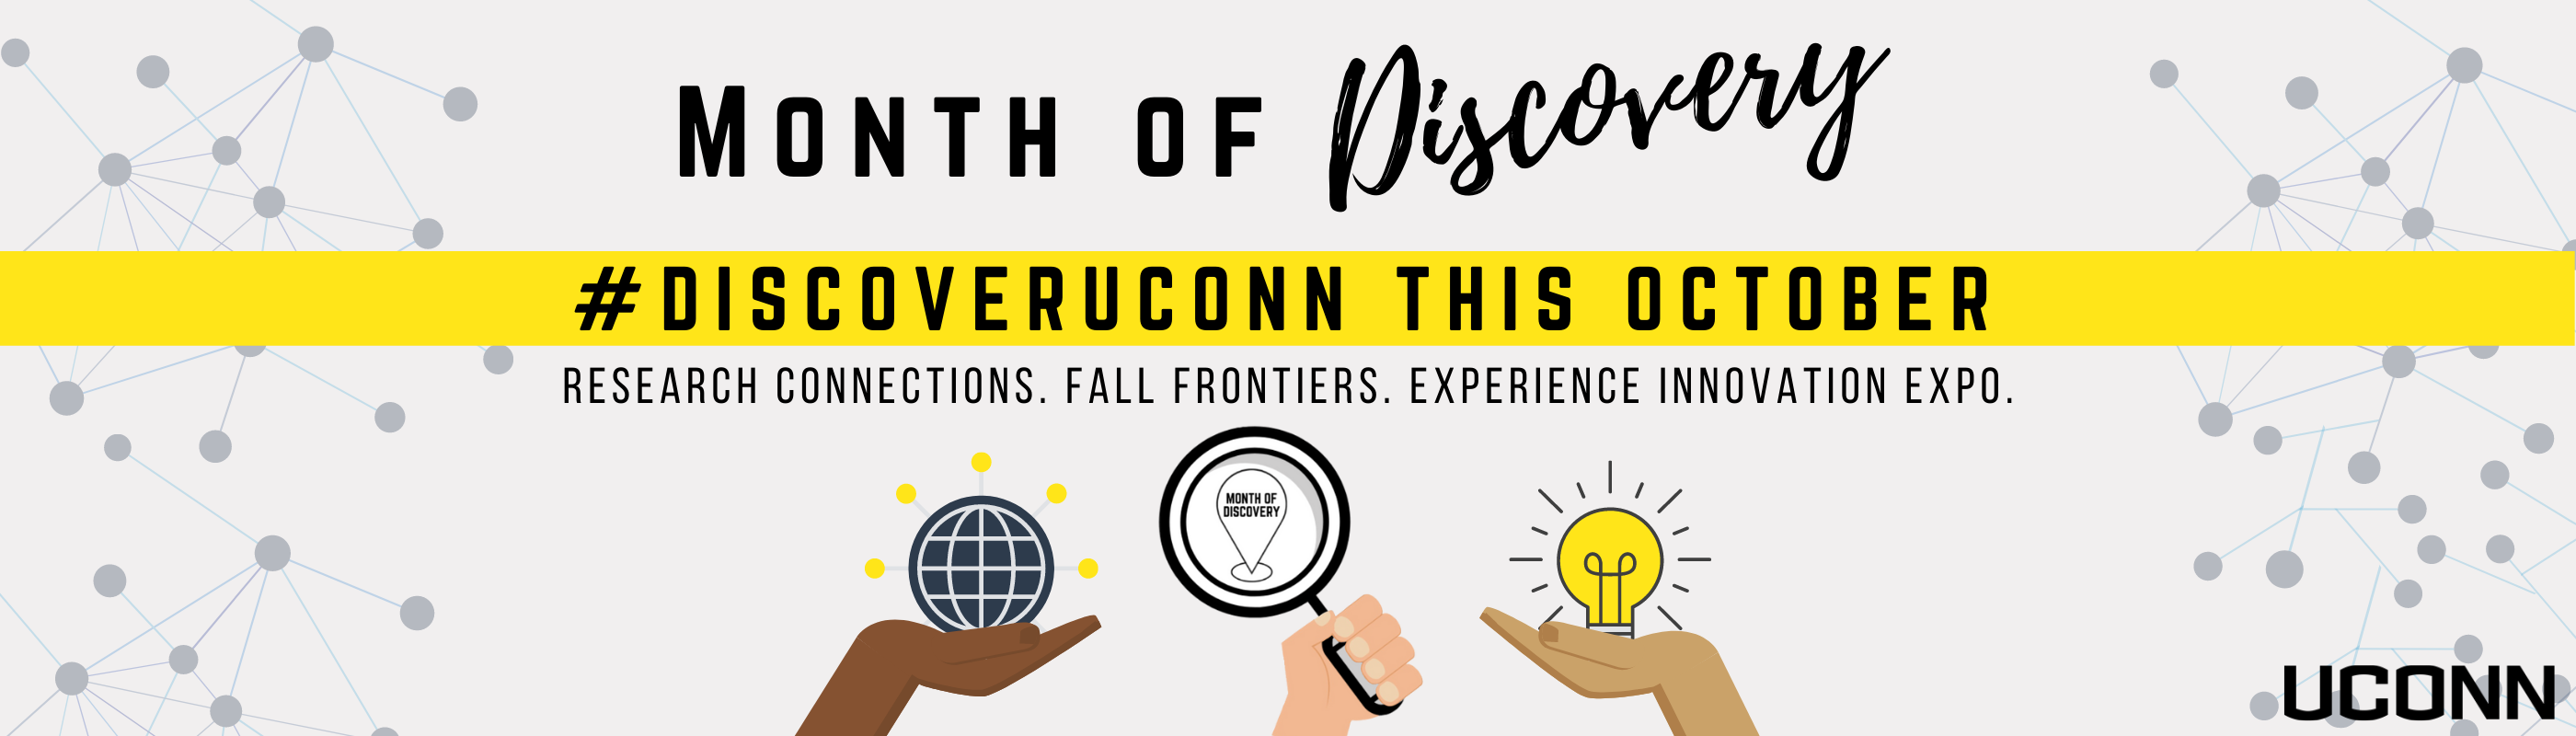 Month of Discovery Web Banner